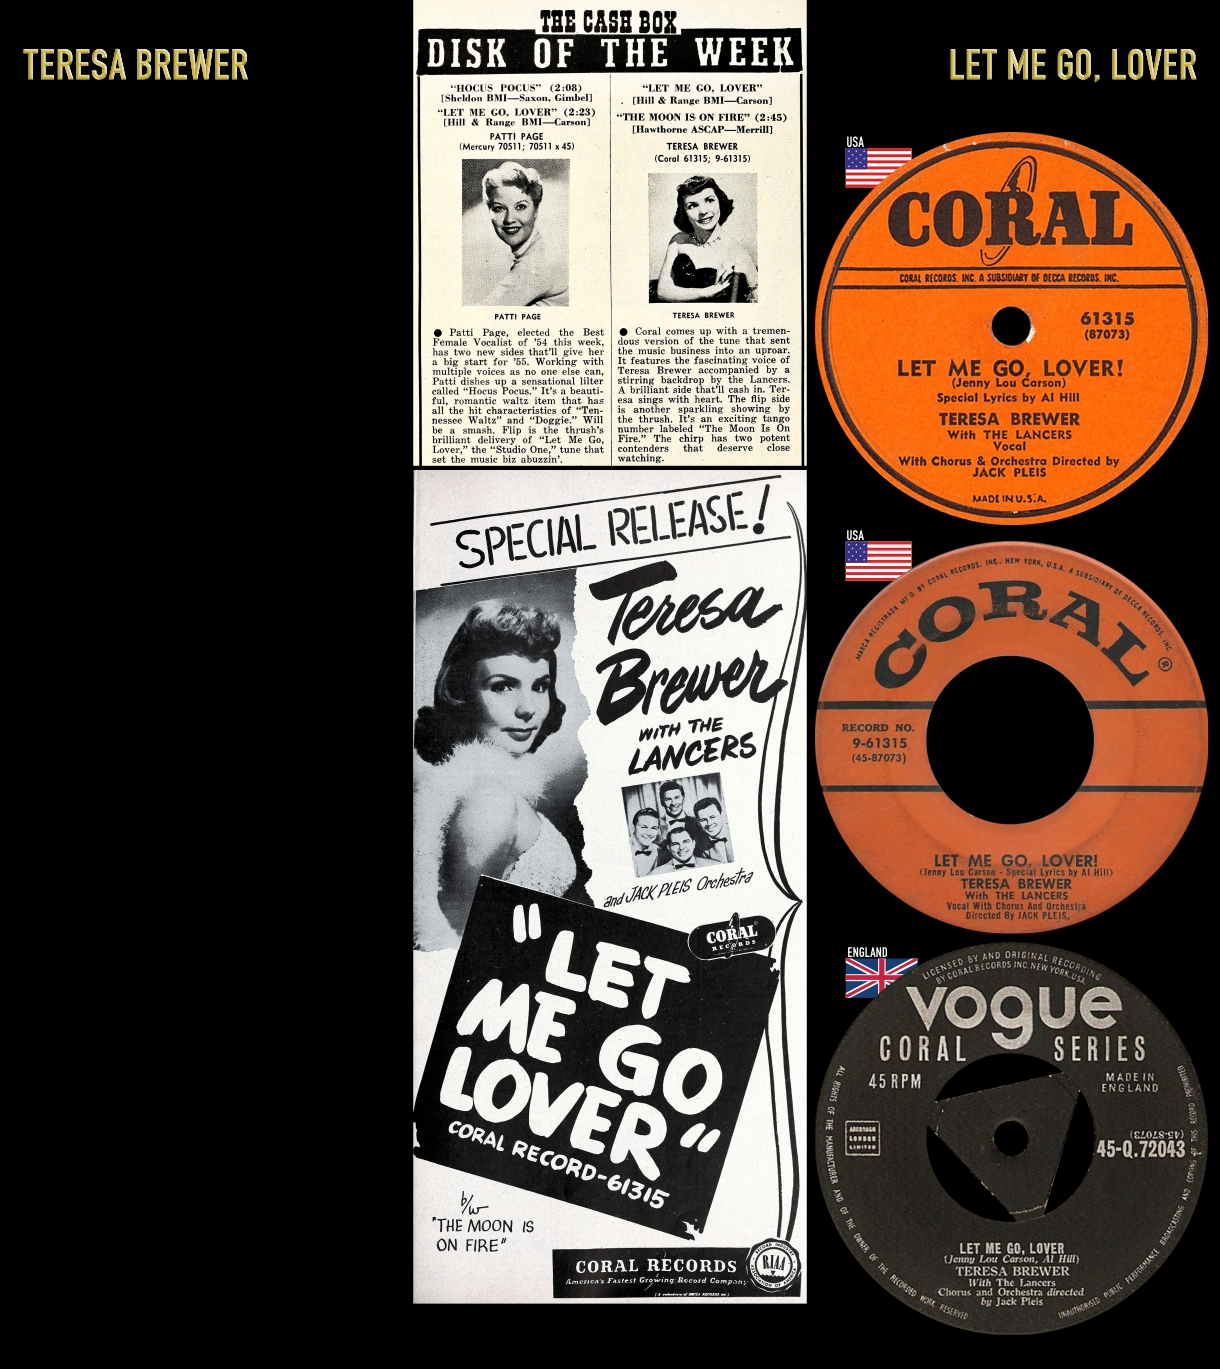 550212_Teresa Brewer_Let Me Go, Lover